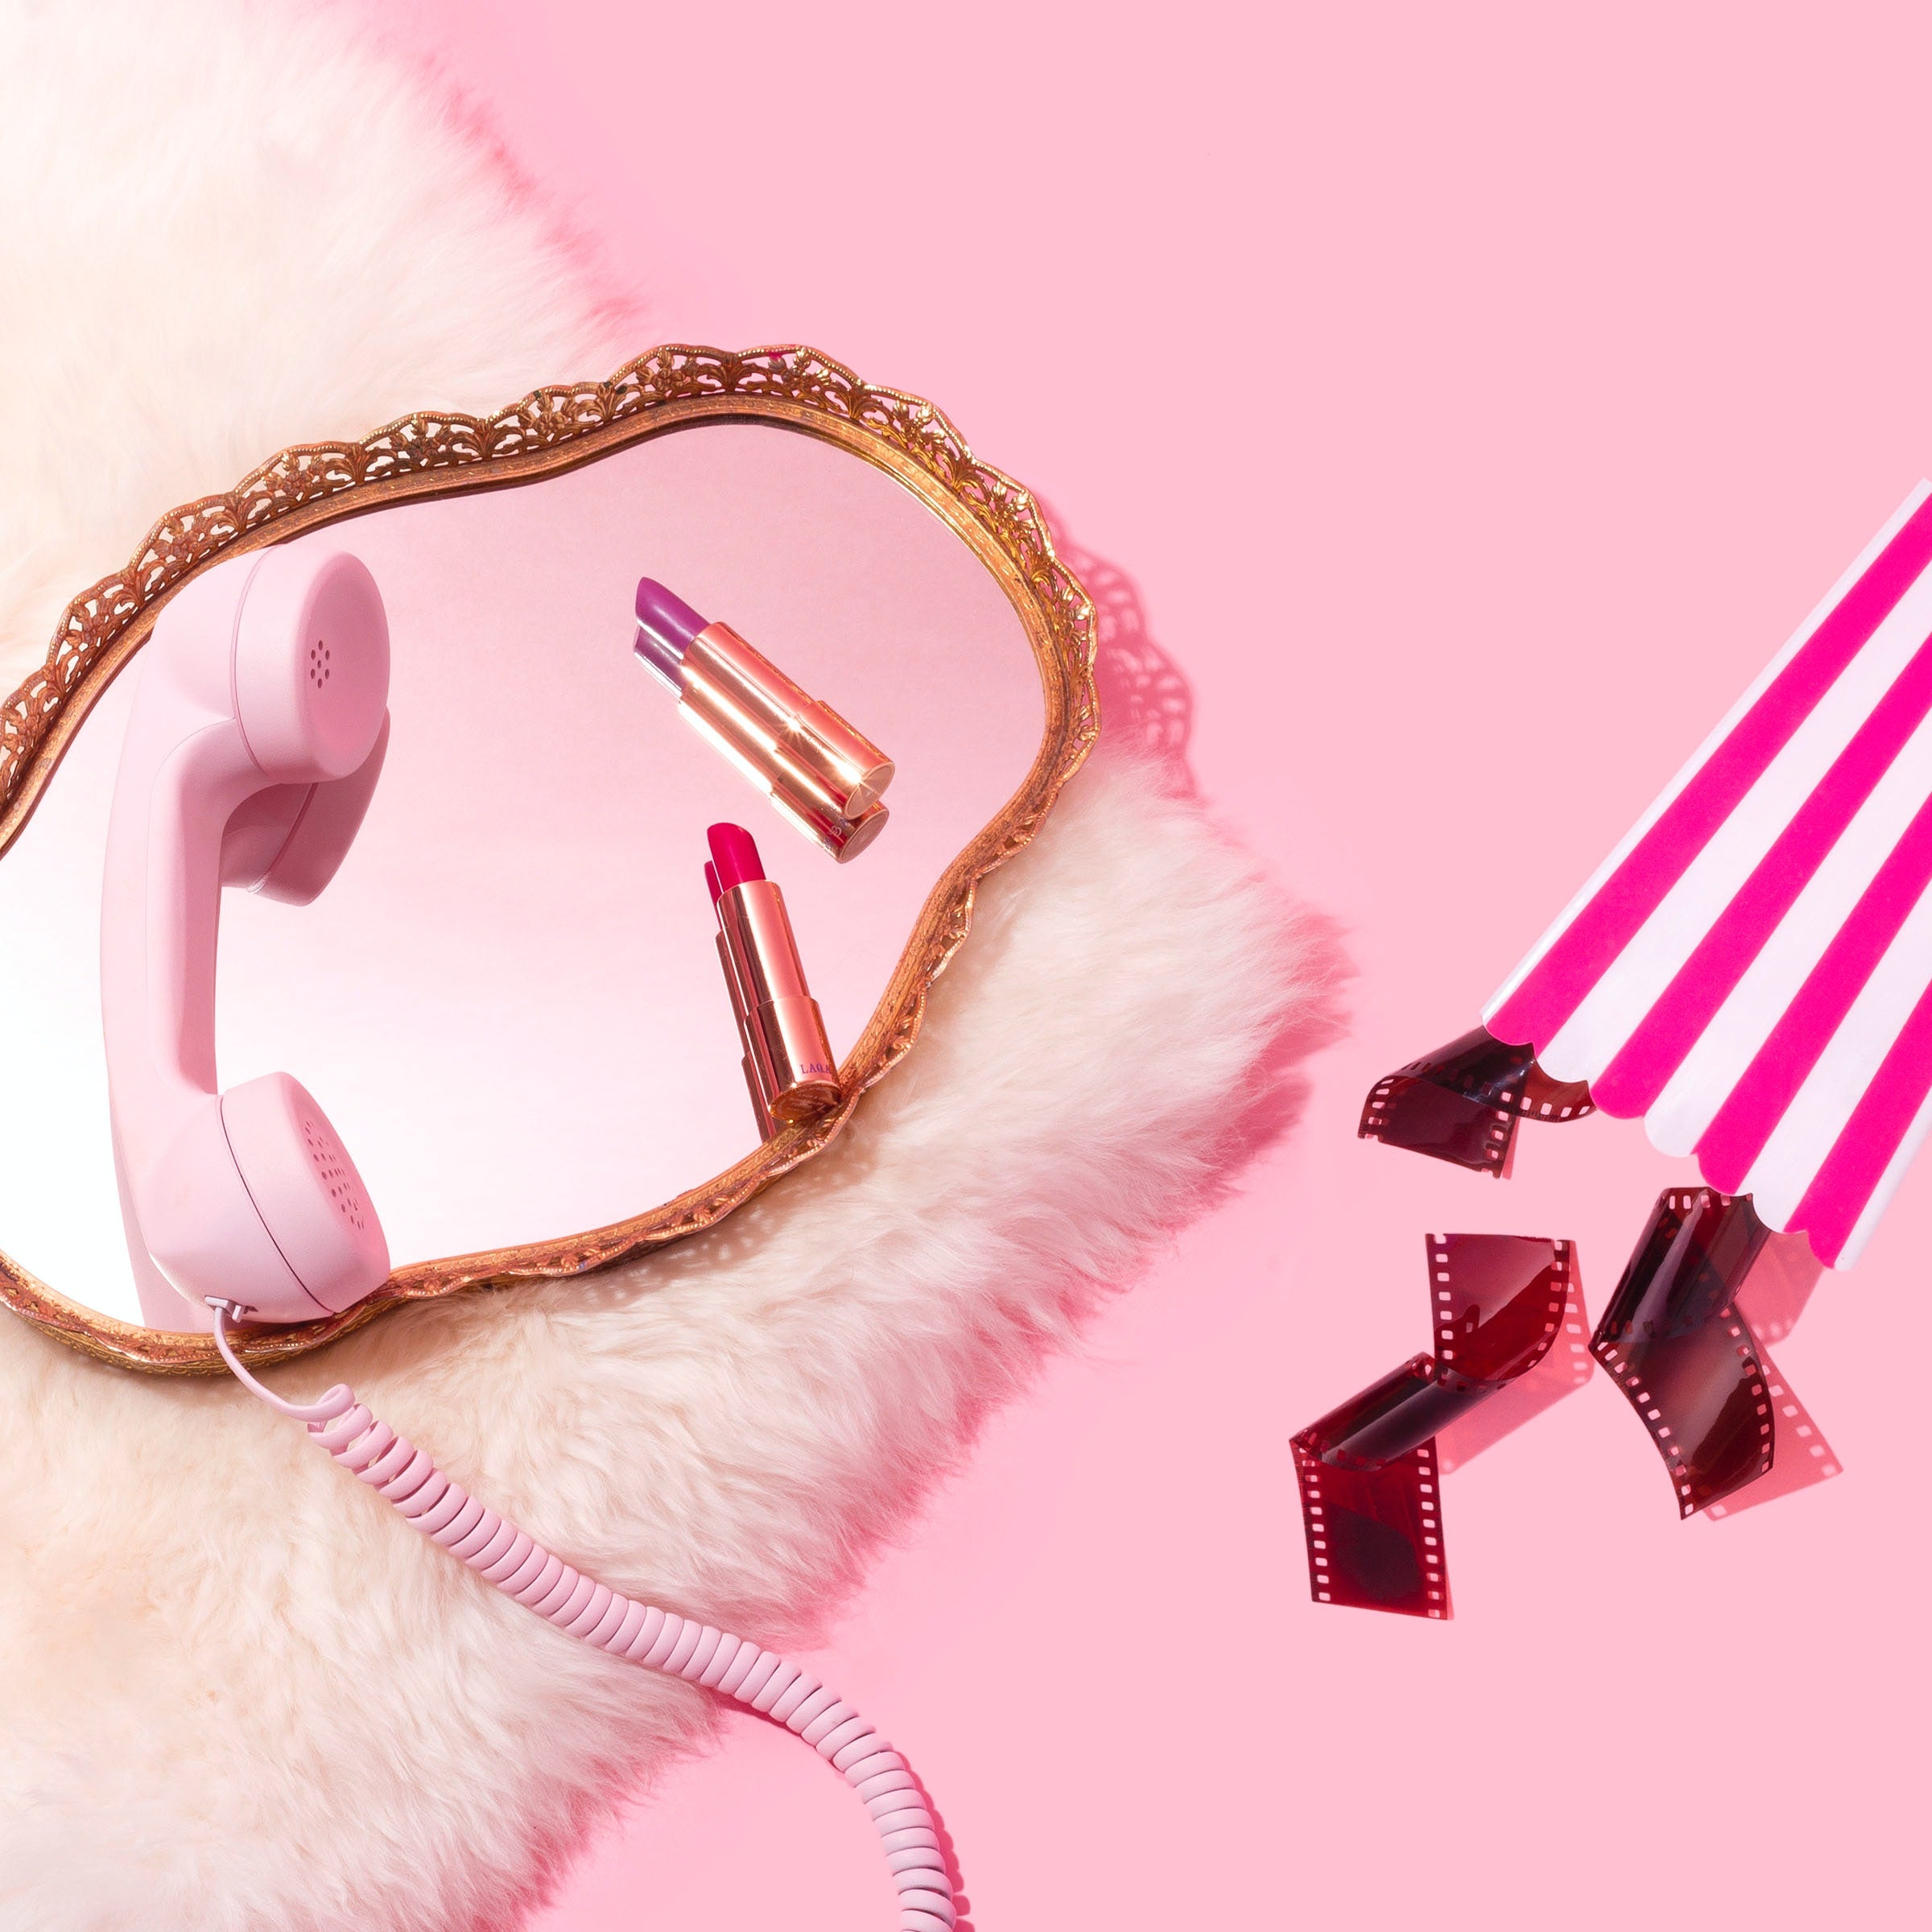 pink background with pink telephone and mirror flatlay